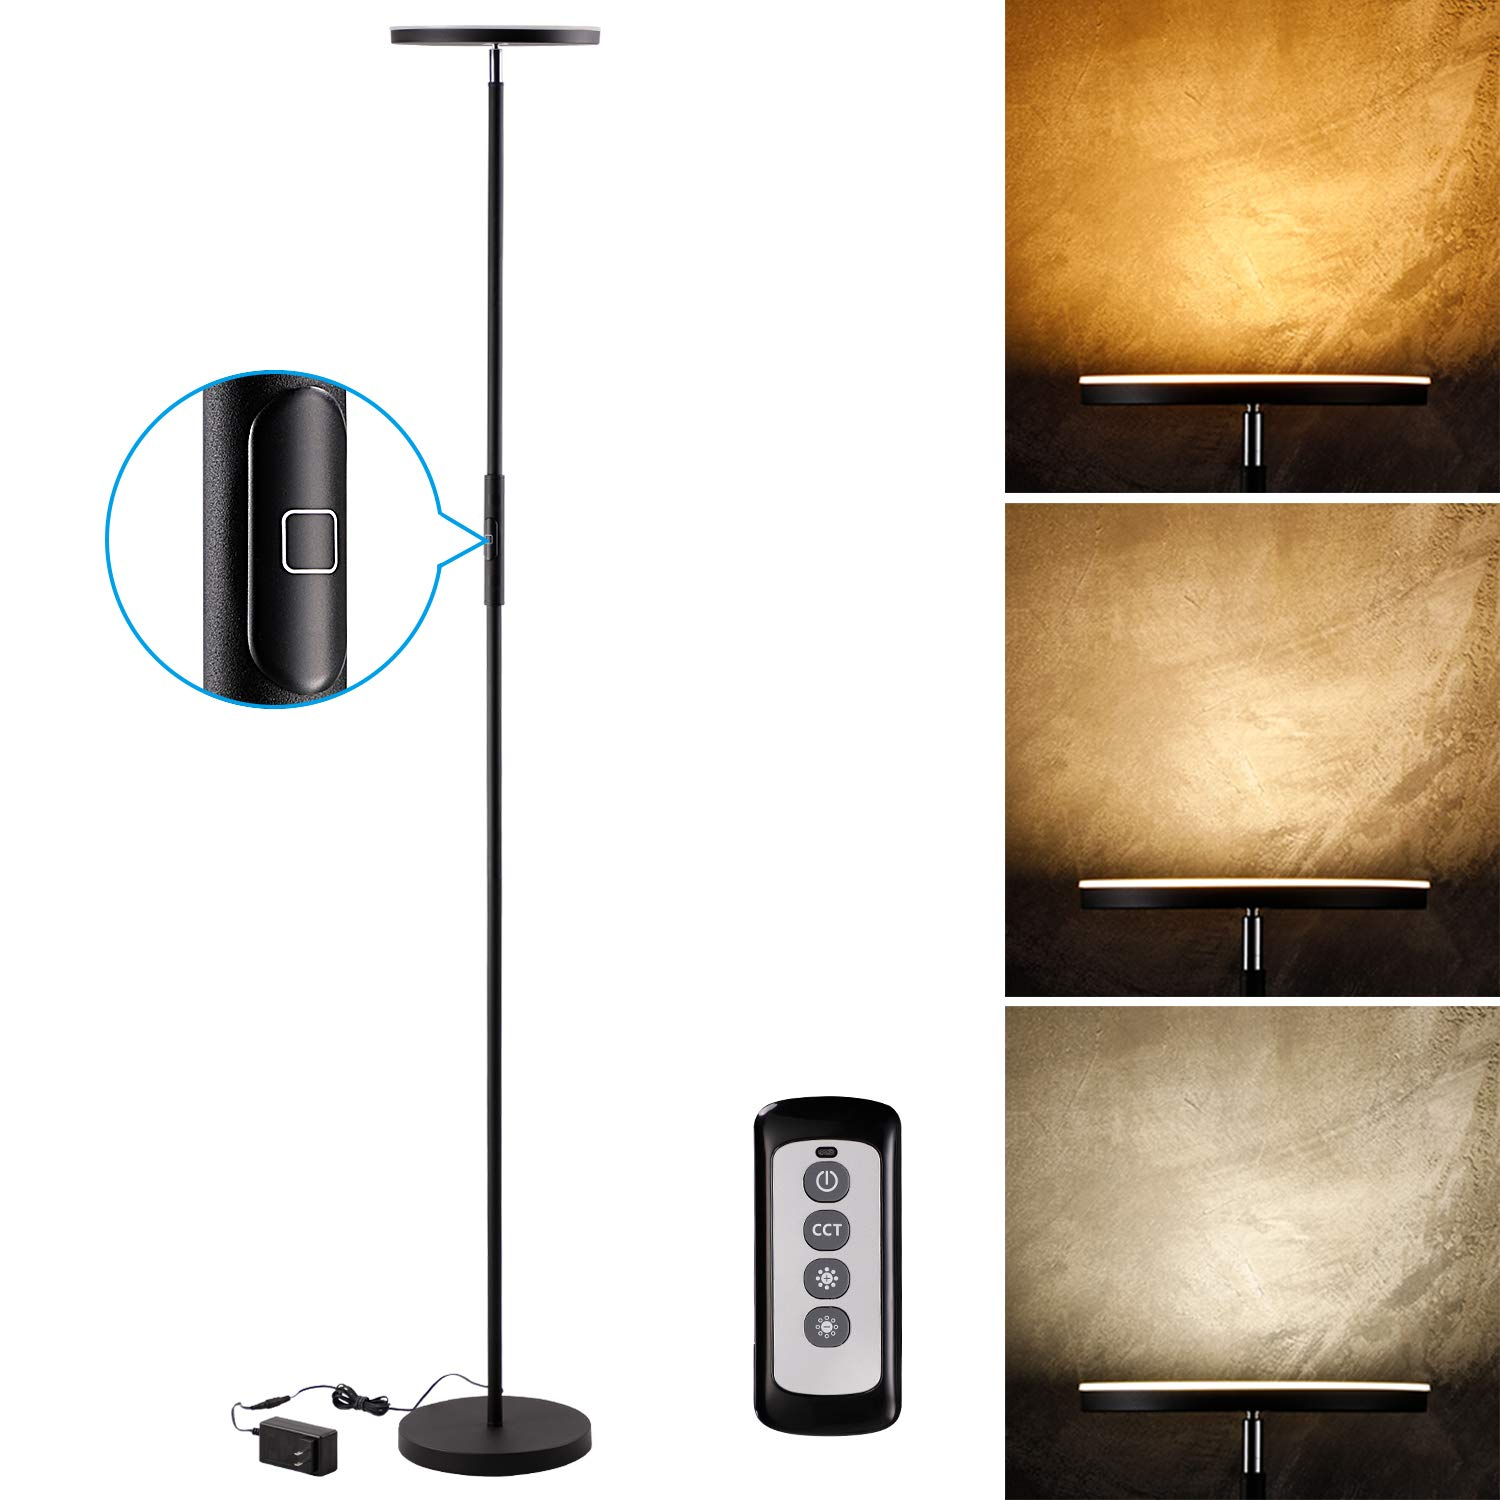 LEONLITE 30W LED Torchiere Floor Lamp, 2400lm, Adjustable 3000K Warm White 4000K Cool White 5000K Daylight, Dimmable 69 Inch Tall Standing Modern Pole Light for Living Rooms, Offices, Bedrooms